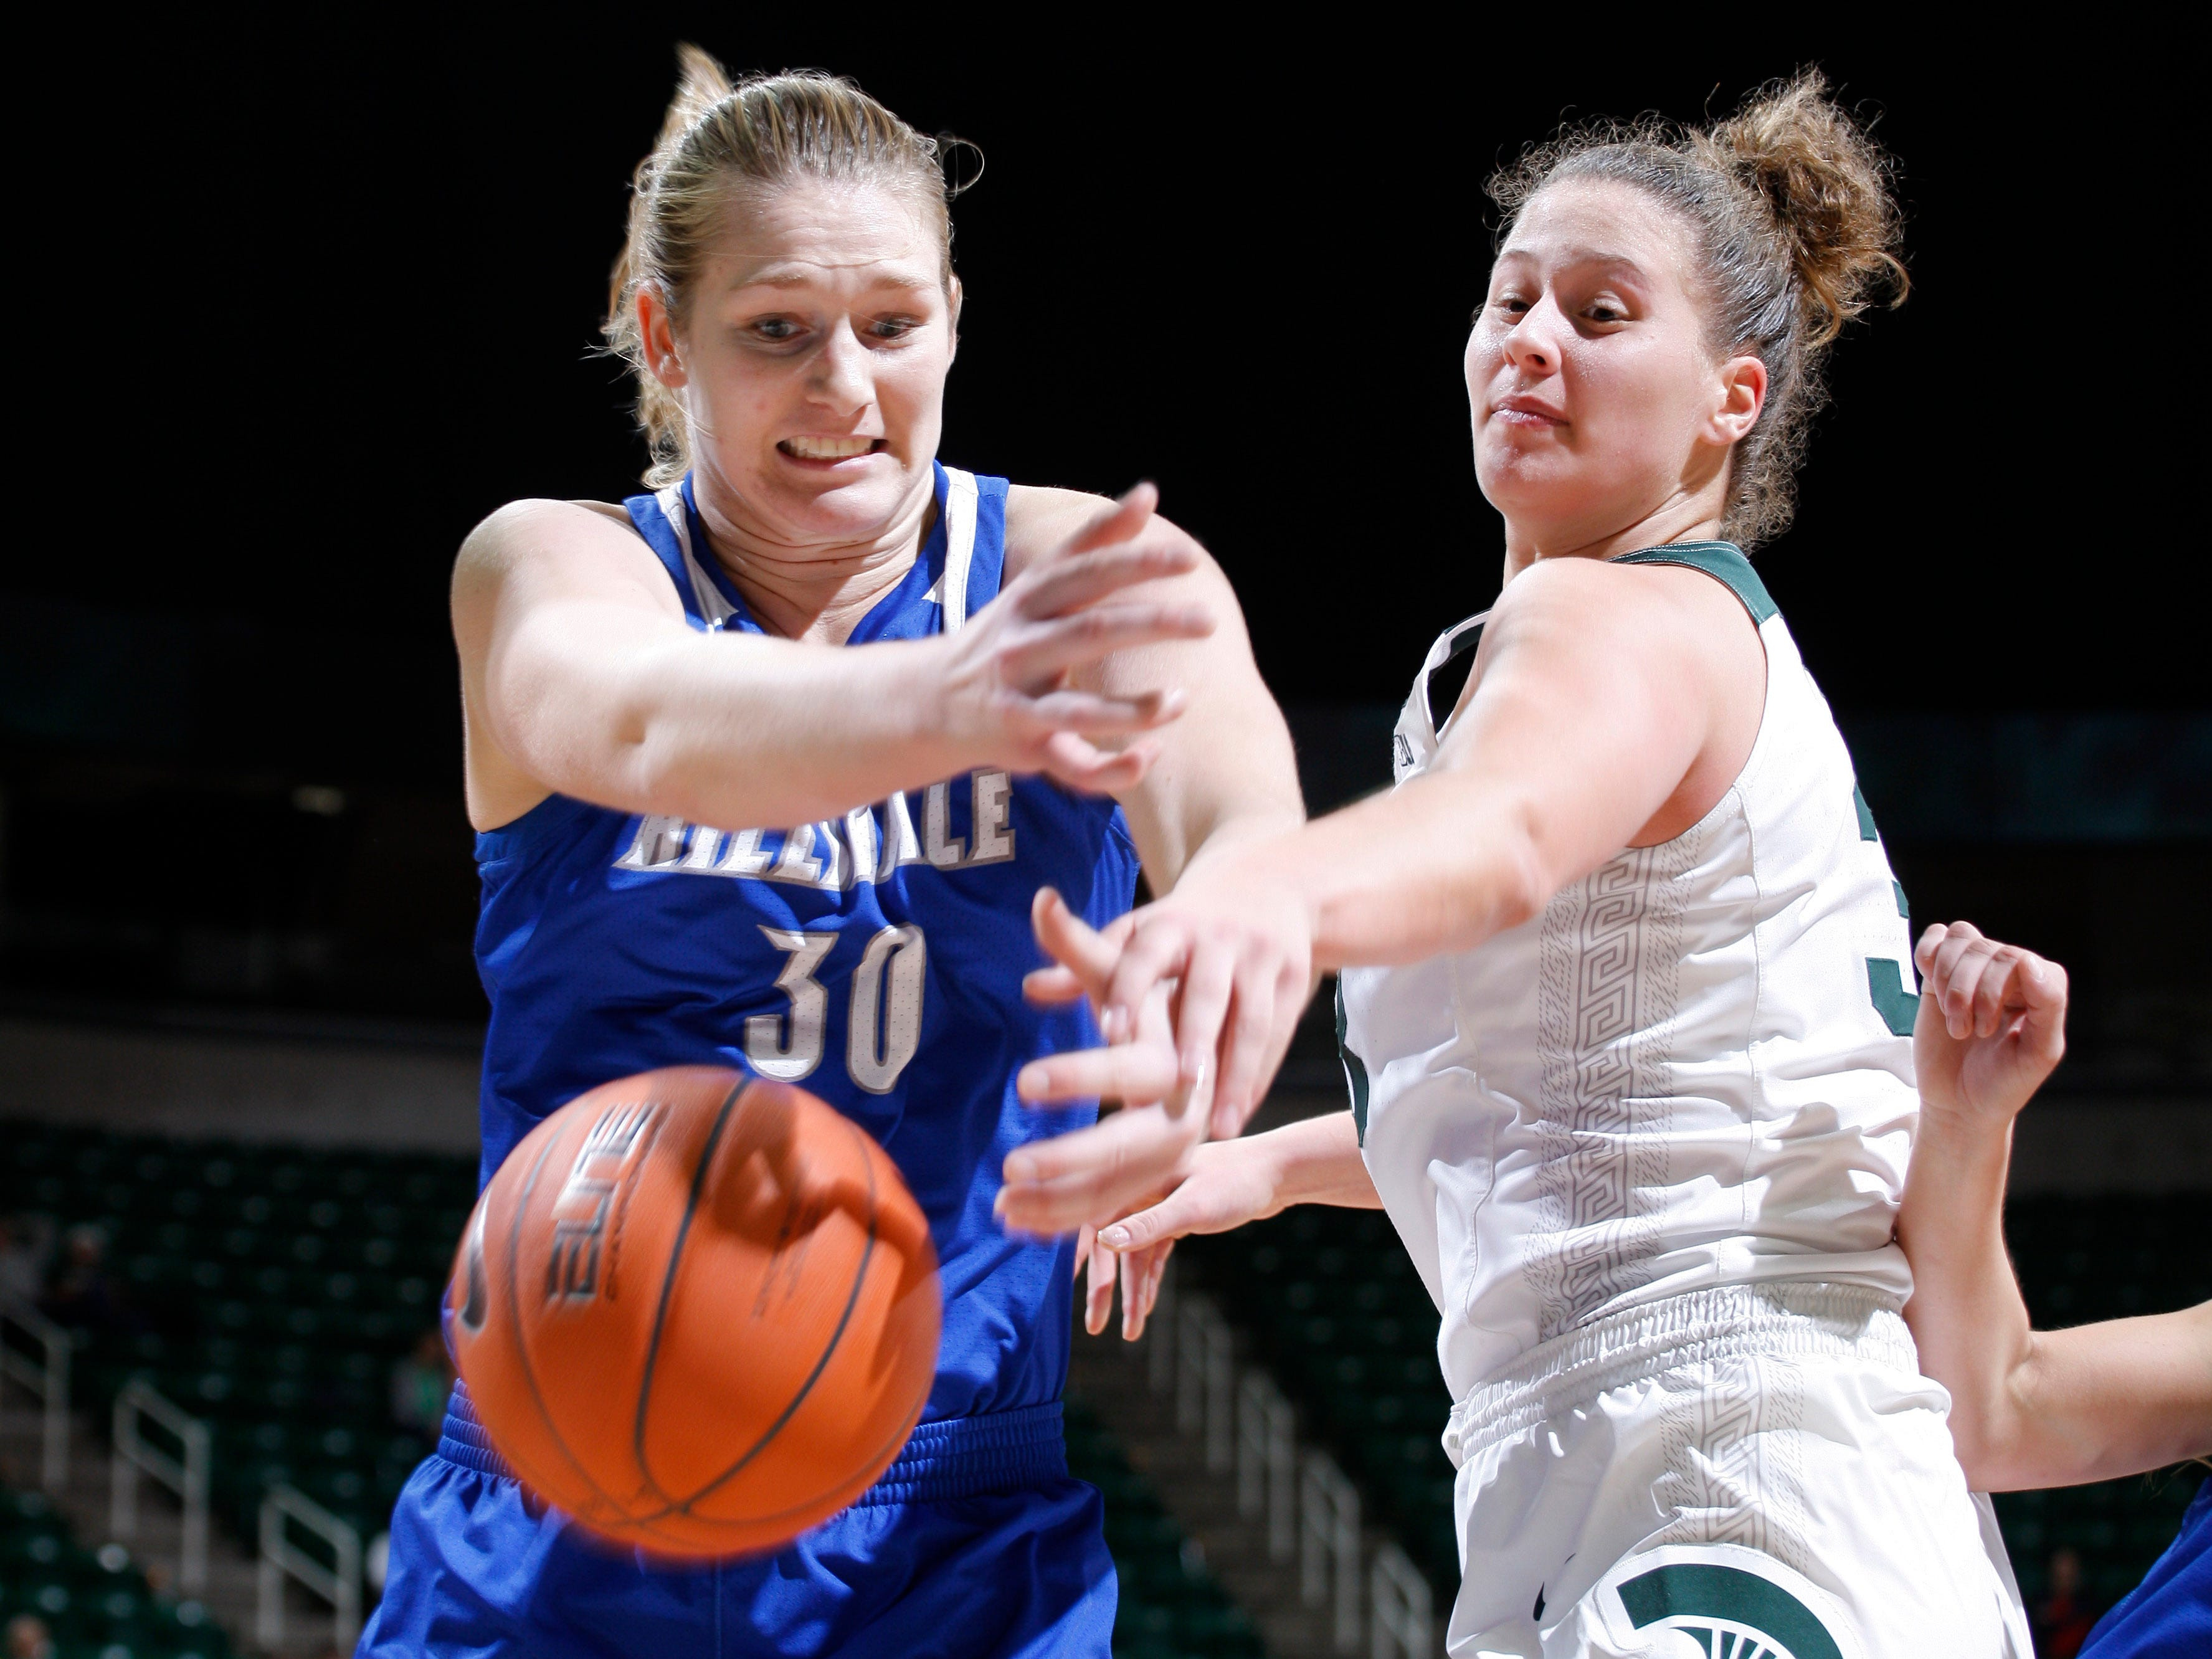 Michigan State's Jenna Allen, right, and Hillsdale's Julia Wacker reach for a loose ball, Thursday, Nov. 1, 2018, in East Lansing, Mich.